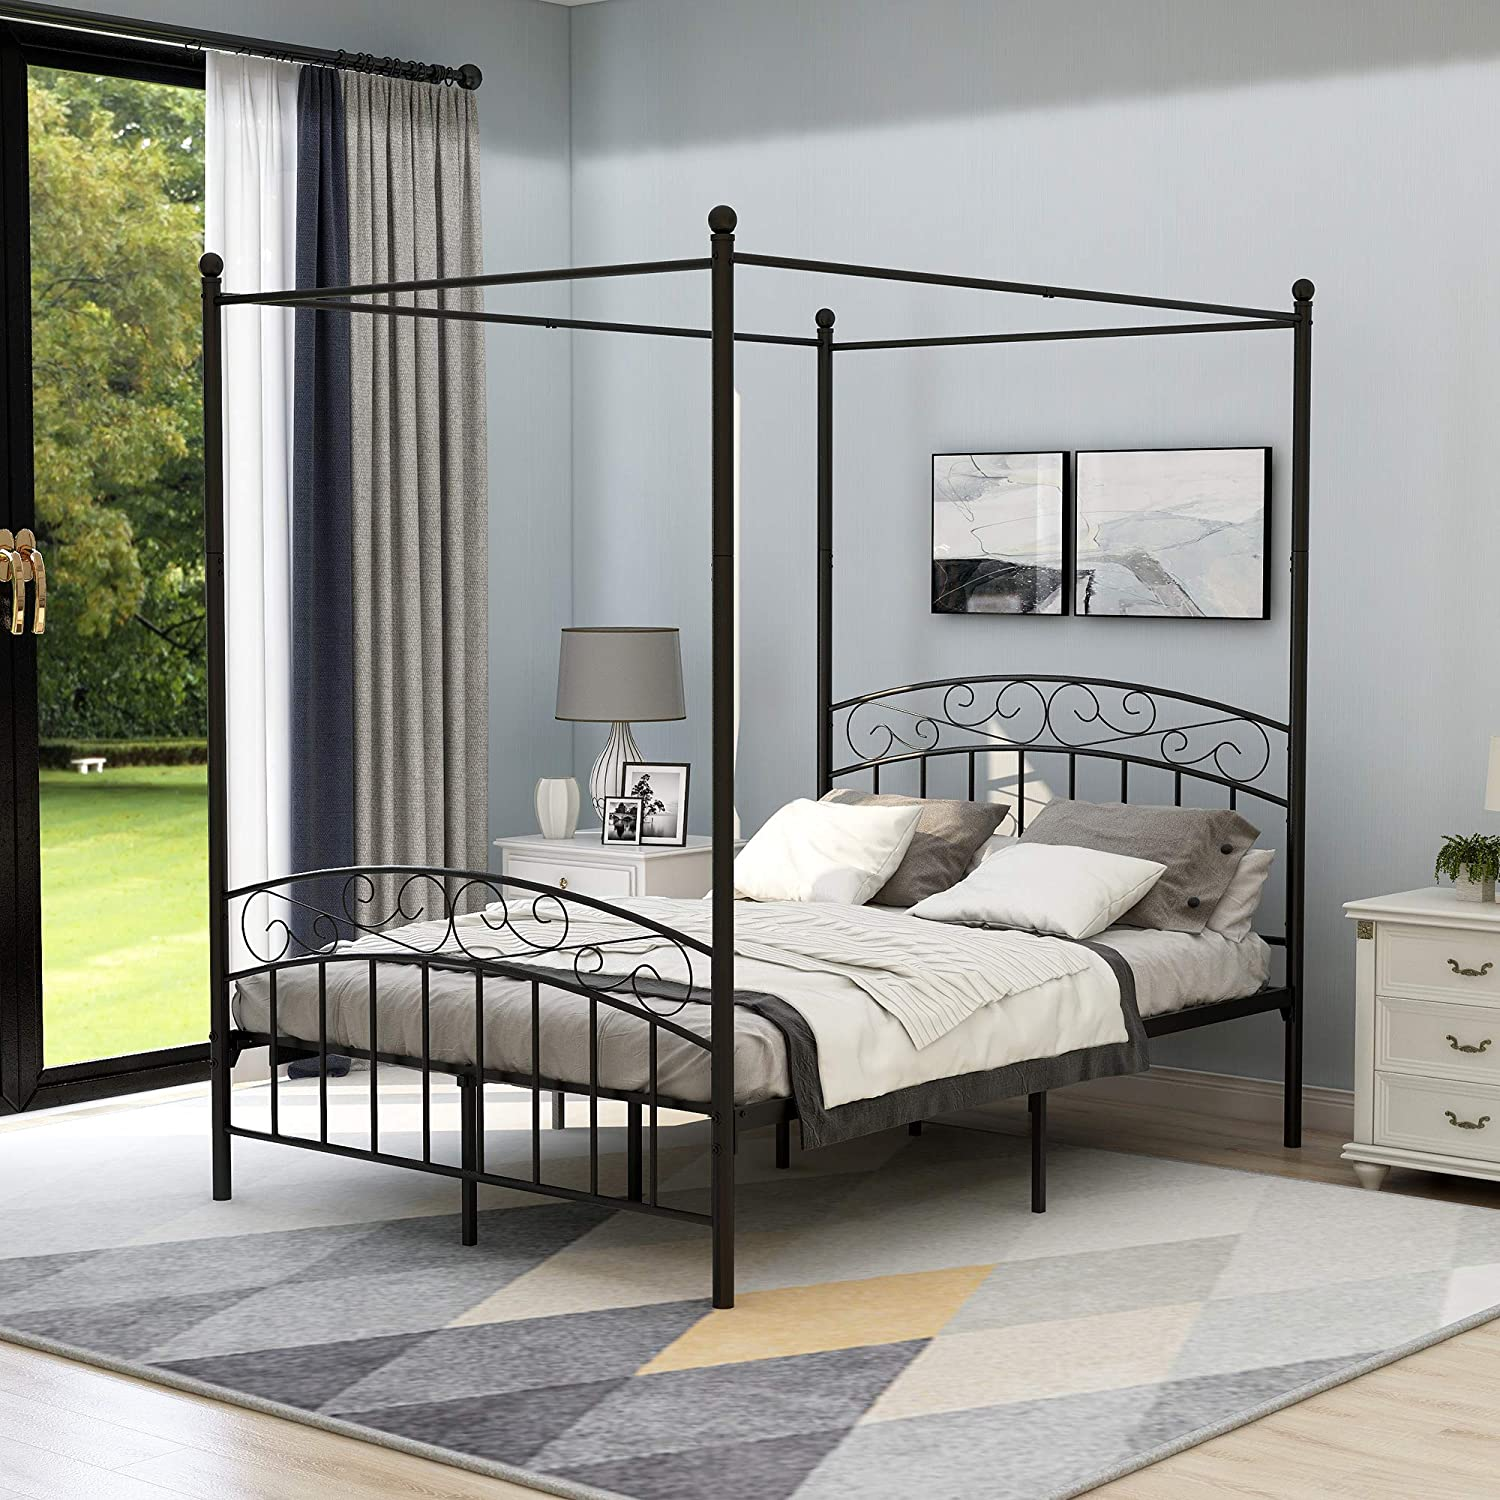 Canopy Bed Frame Full Size with Headboard and Footboard, Sturdy Metal Steel Easy Assembly,Black